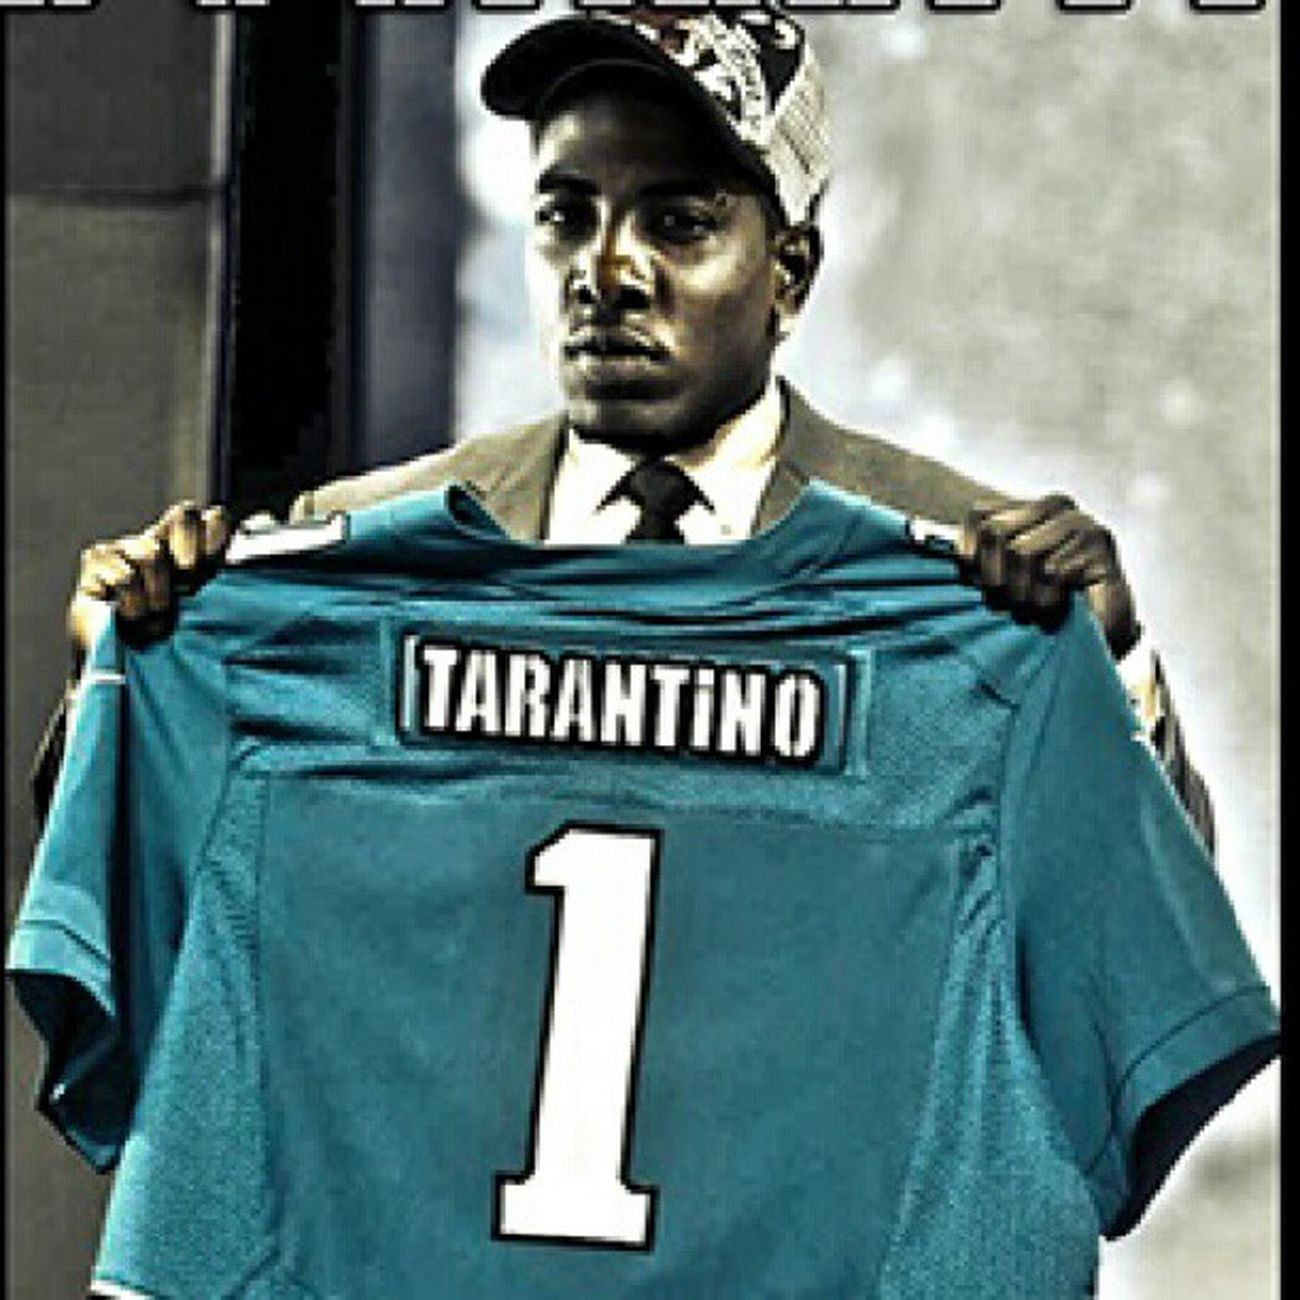 Timtarantino Jaguars Jags NFL draft 1 winning football best unstoppable funny jokes followme famous